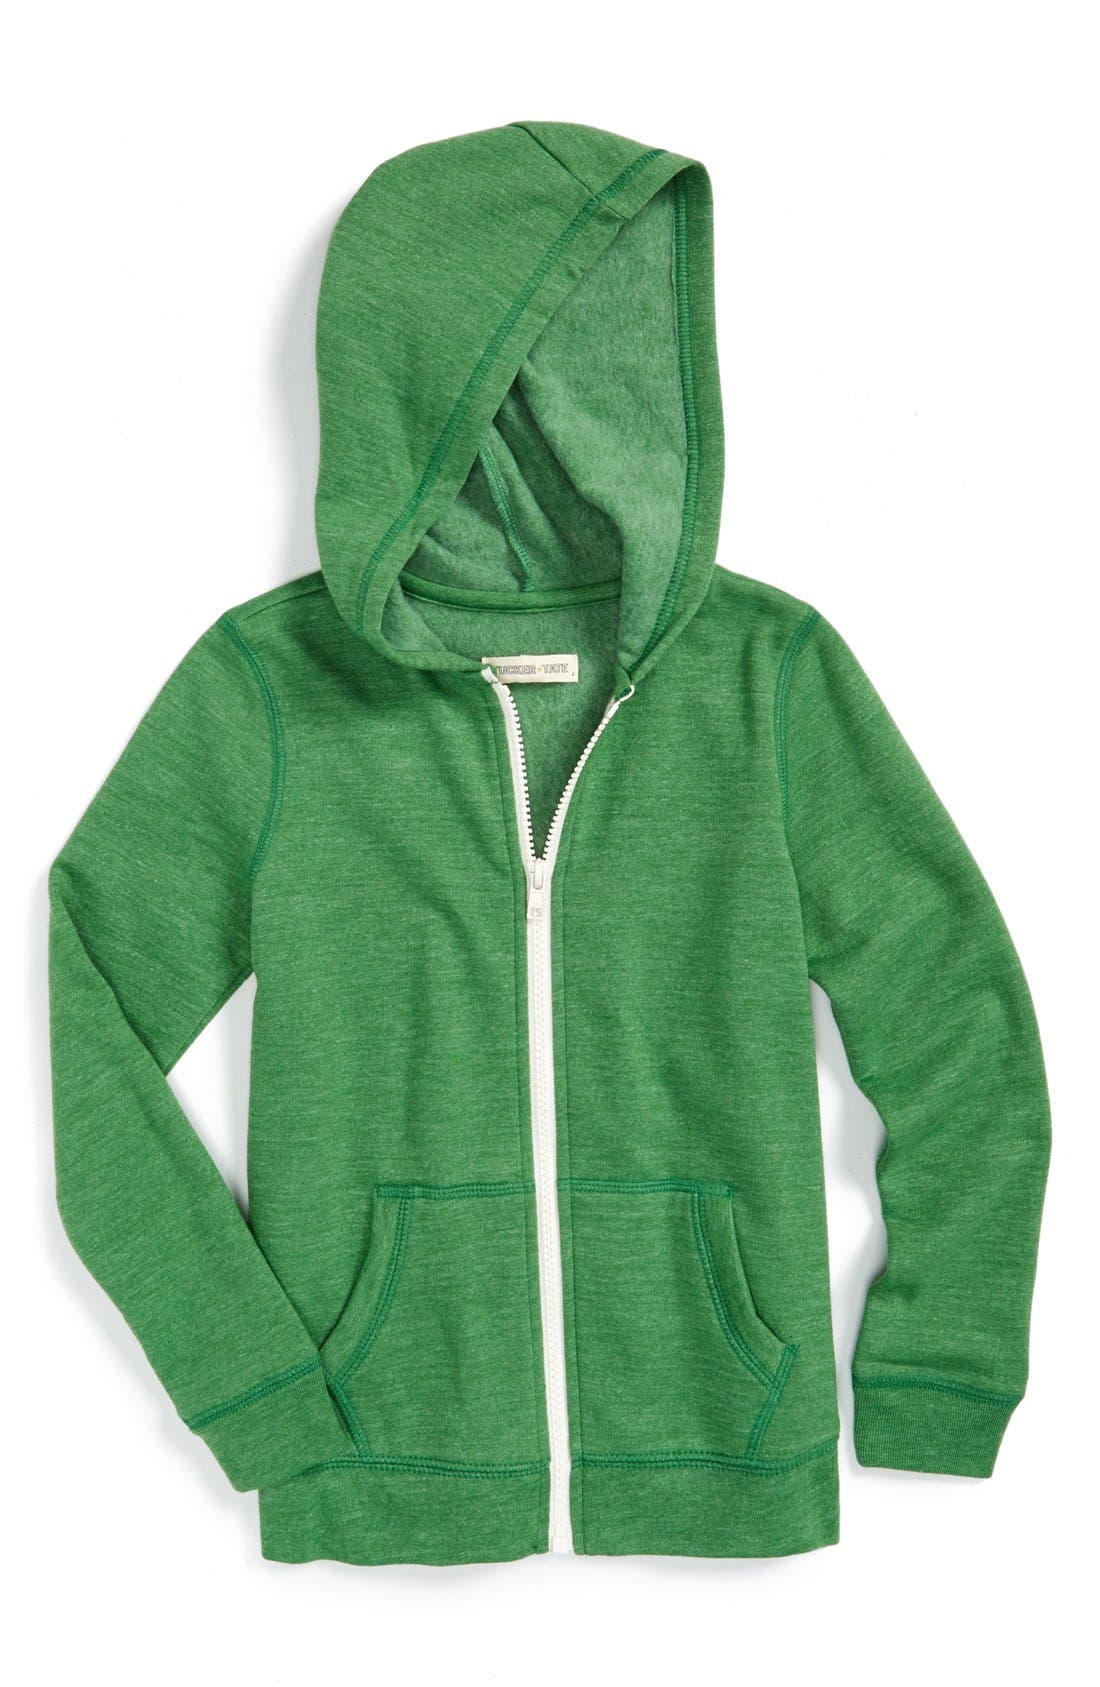 Alternate Image 1 Selected - Tucker + Tate Zip Front Hoodie (Toddler Boys, Little Boys & Big Boys)